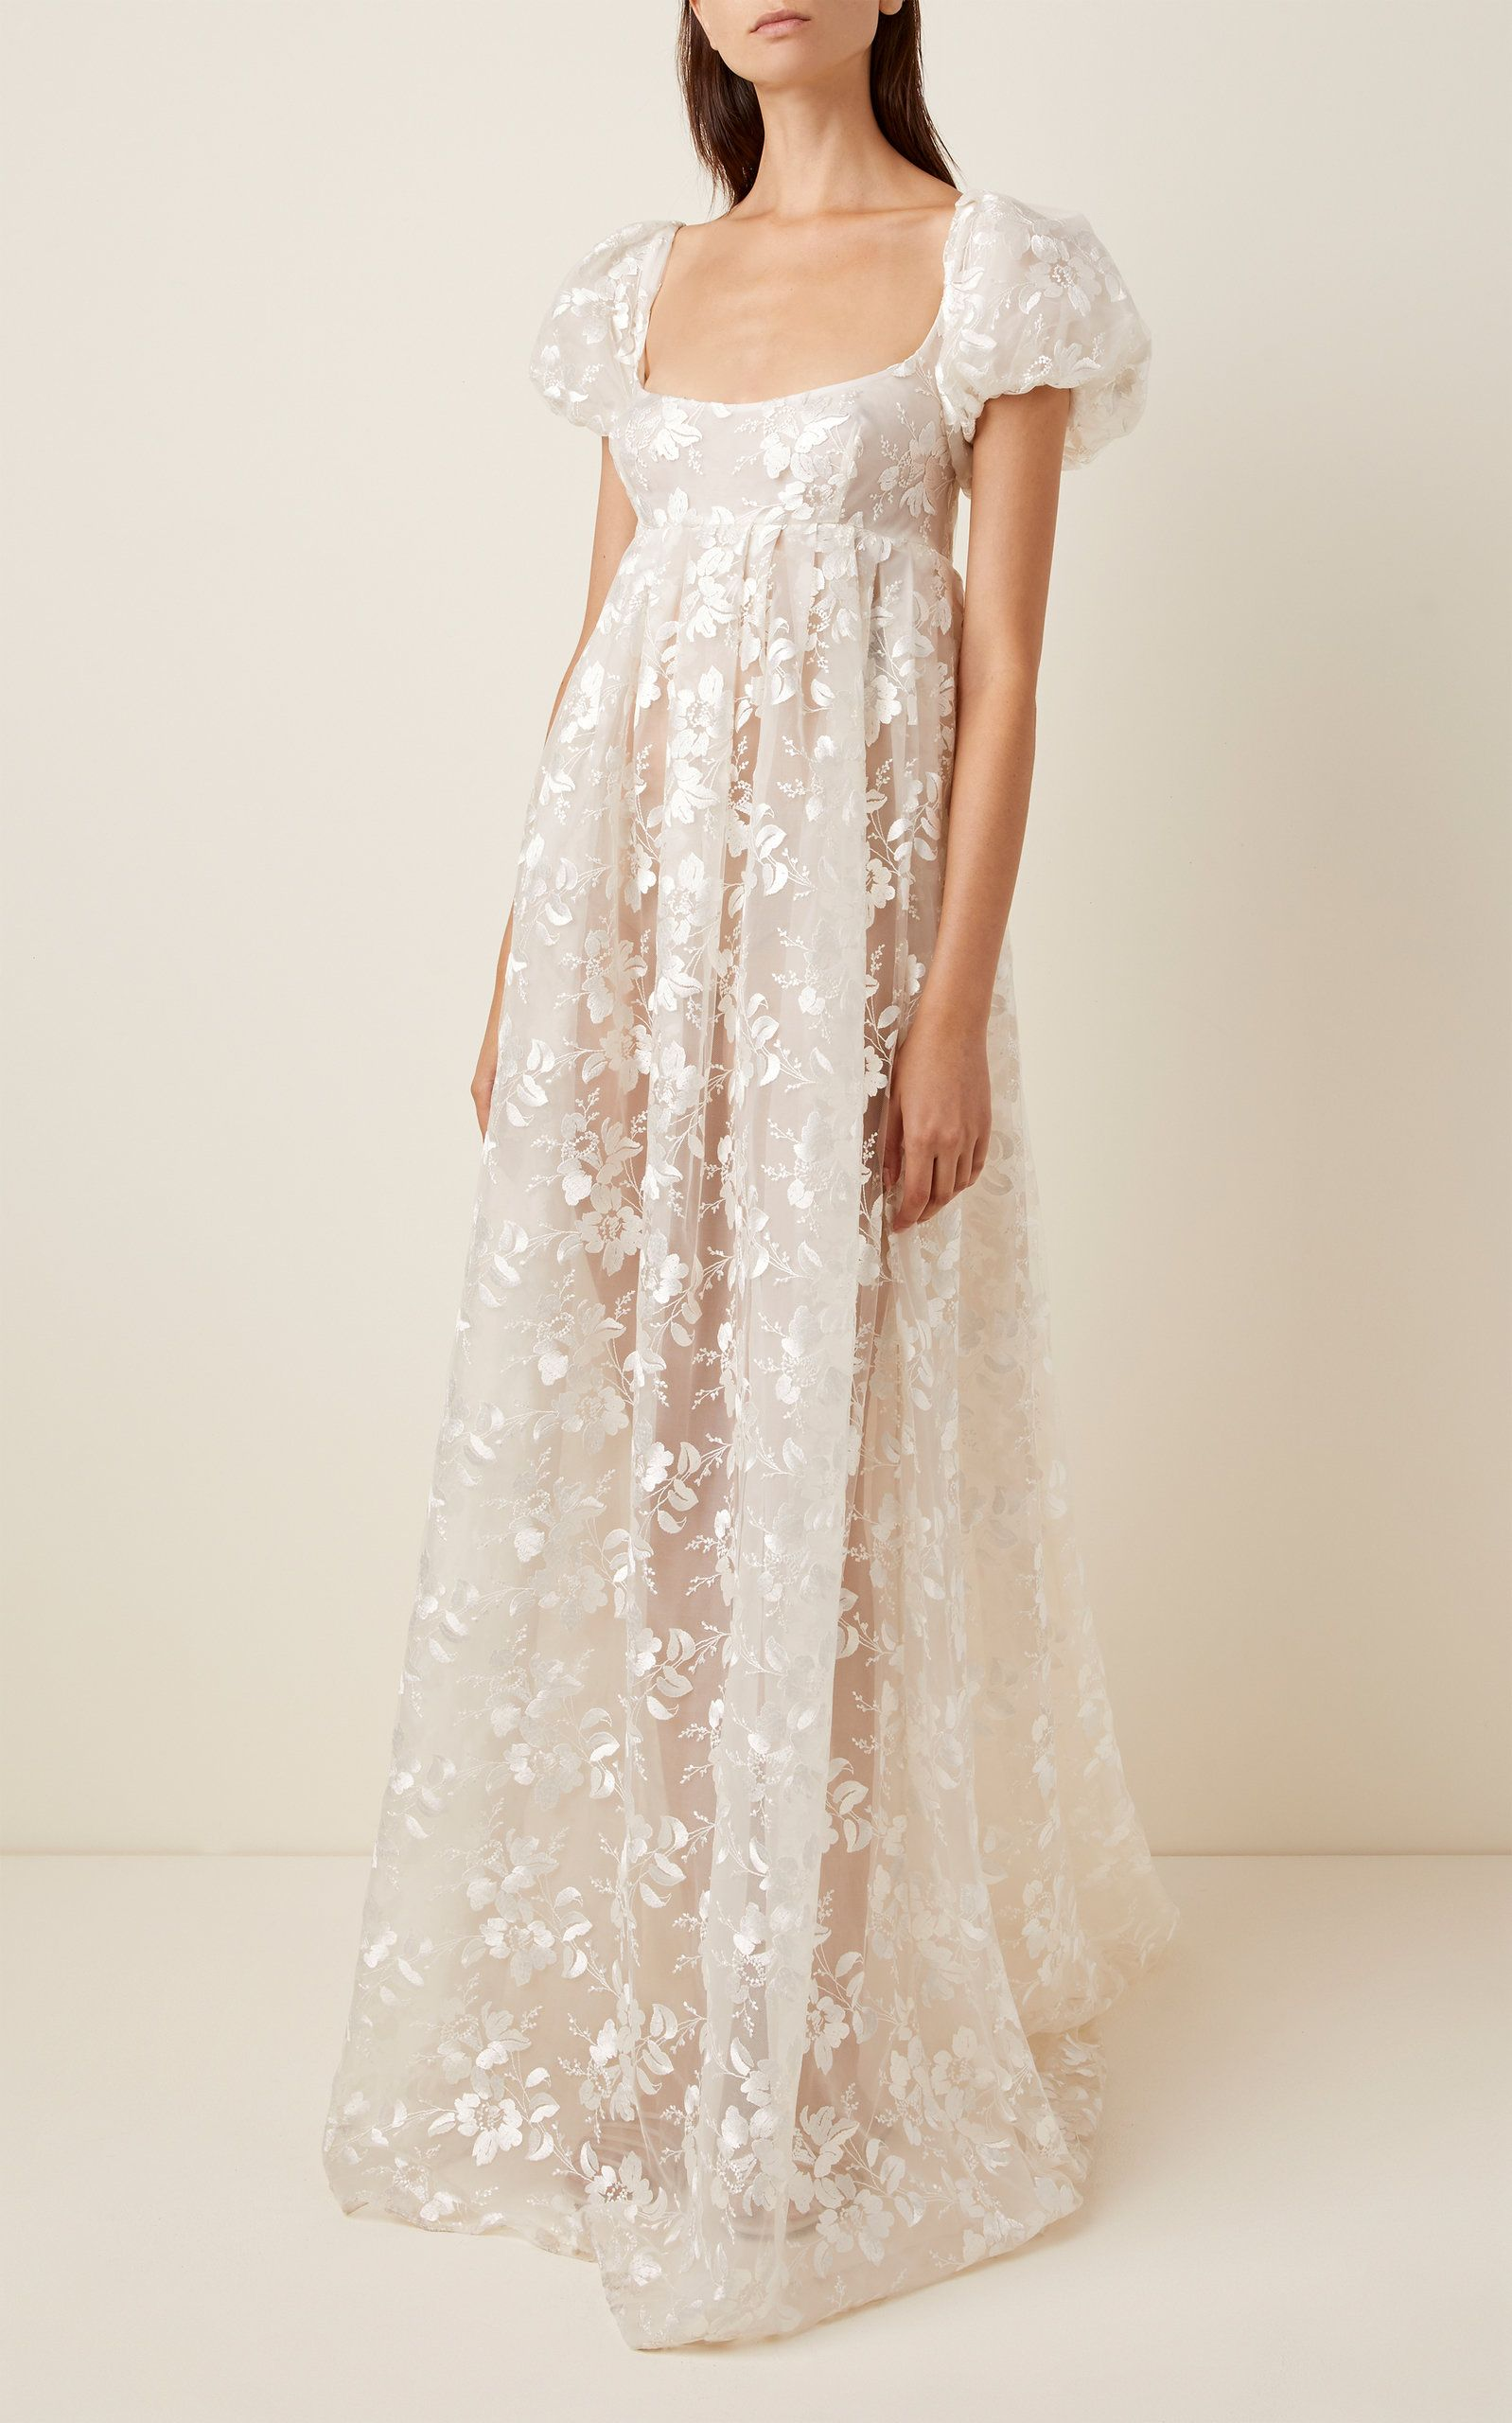 Brock Collection Embroidered Appliqued Organza Maxi Dress In 2020 Online Wedding Dress Buy Wedding Dress Online Buy Wedding Dress